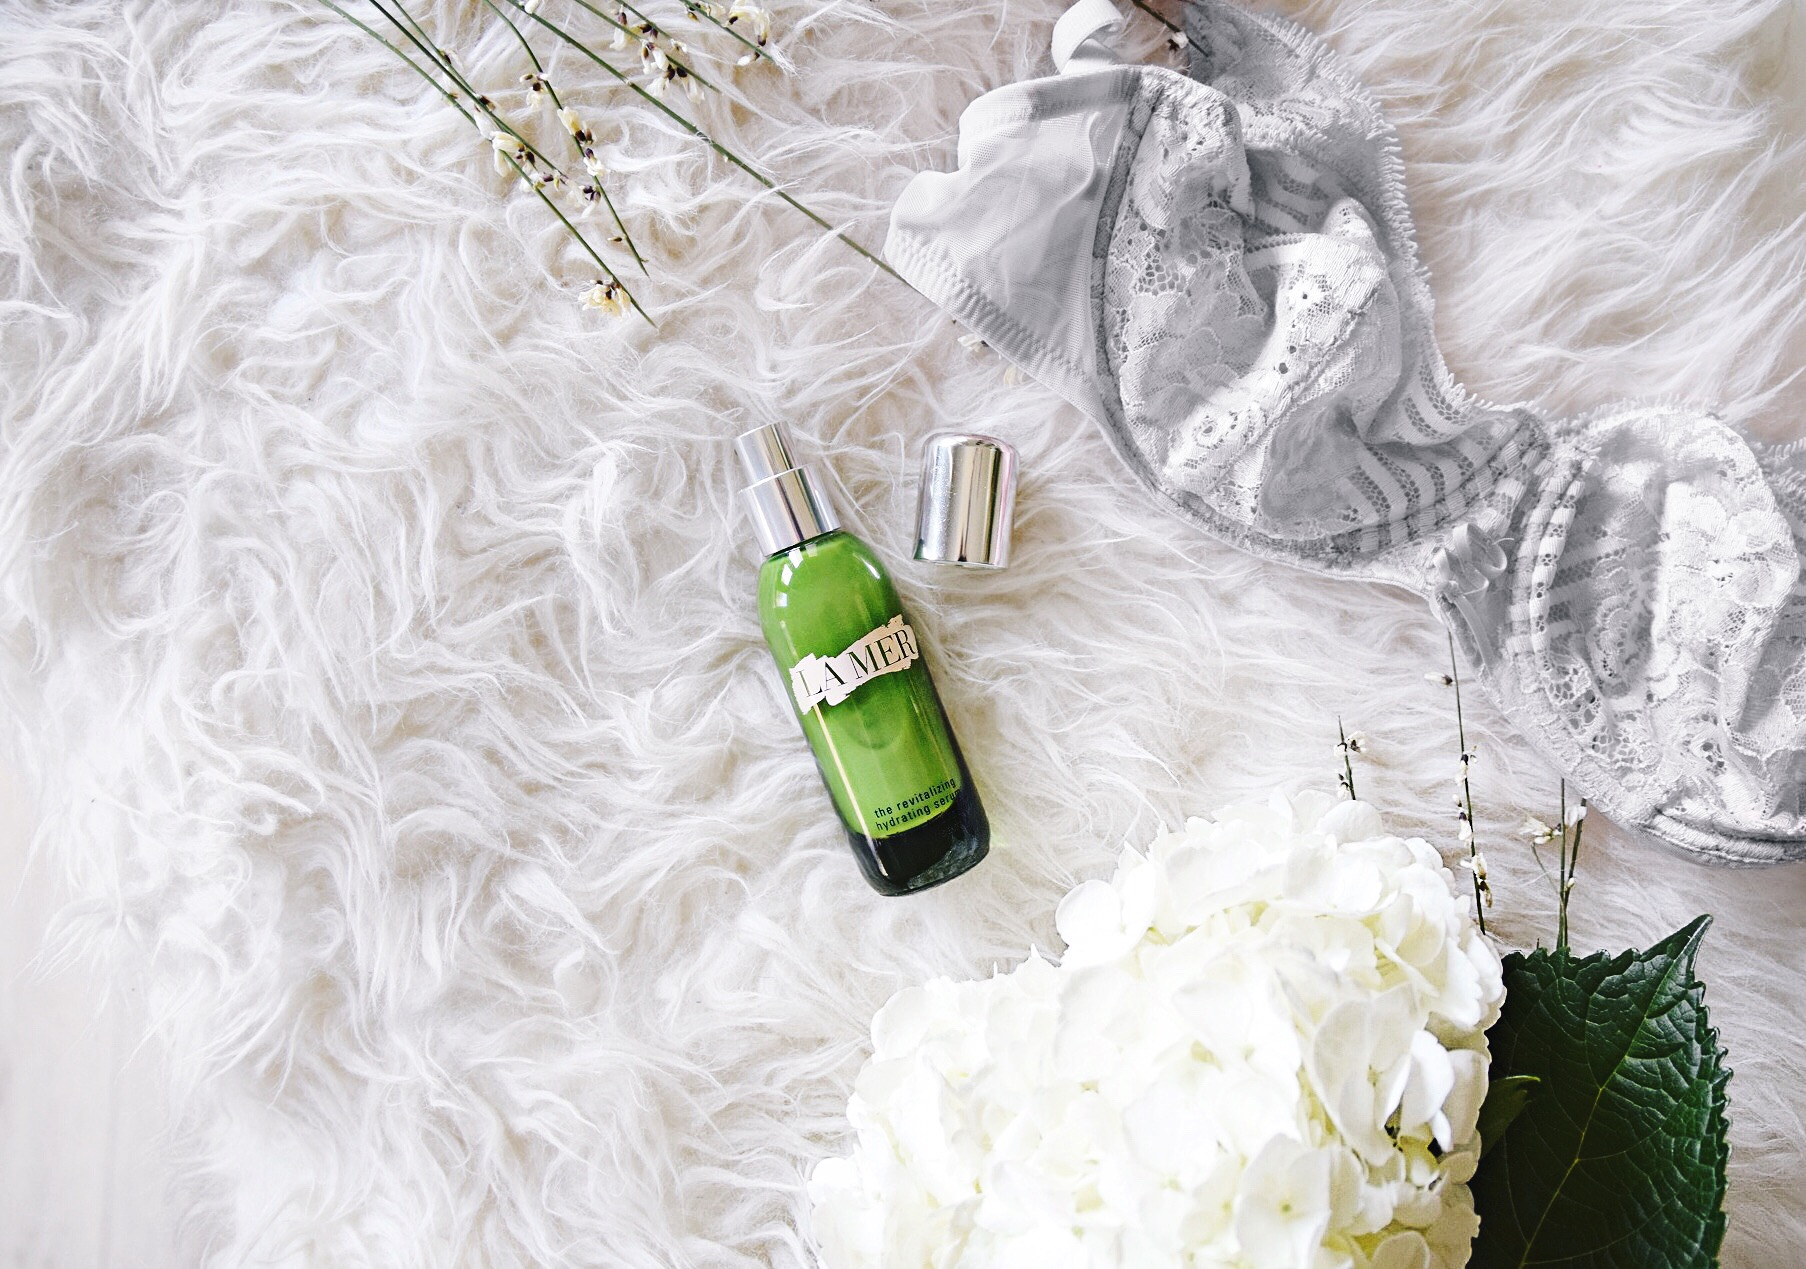 On My Vanity | La Mer // La Mer Revitalizing Hydration Serum // Beauty and Skincare Blogger // La Mer Skincare Products // Los Angeles Fashion Blogger Daphne Blunt: To Style, With Love